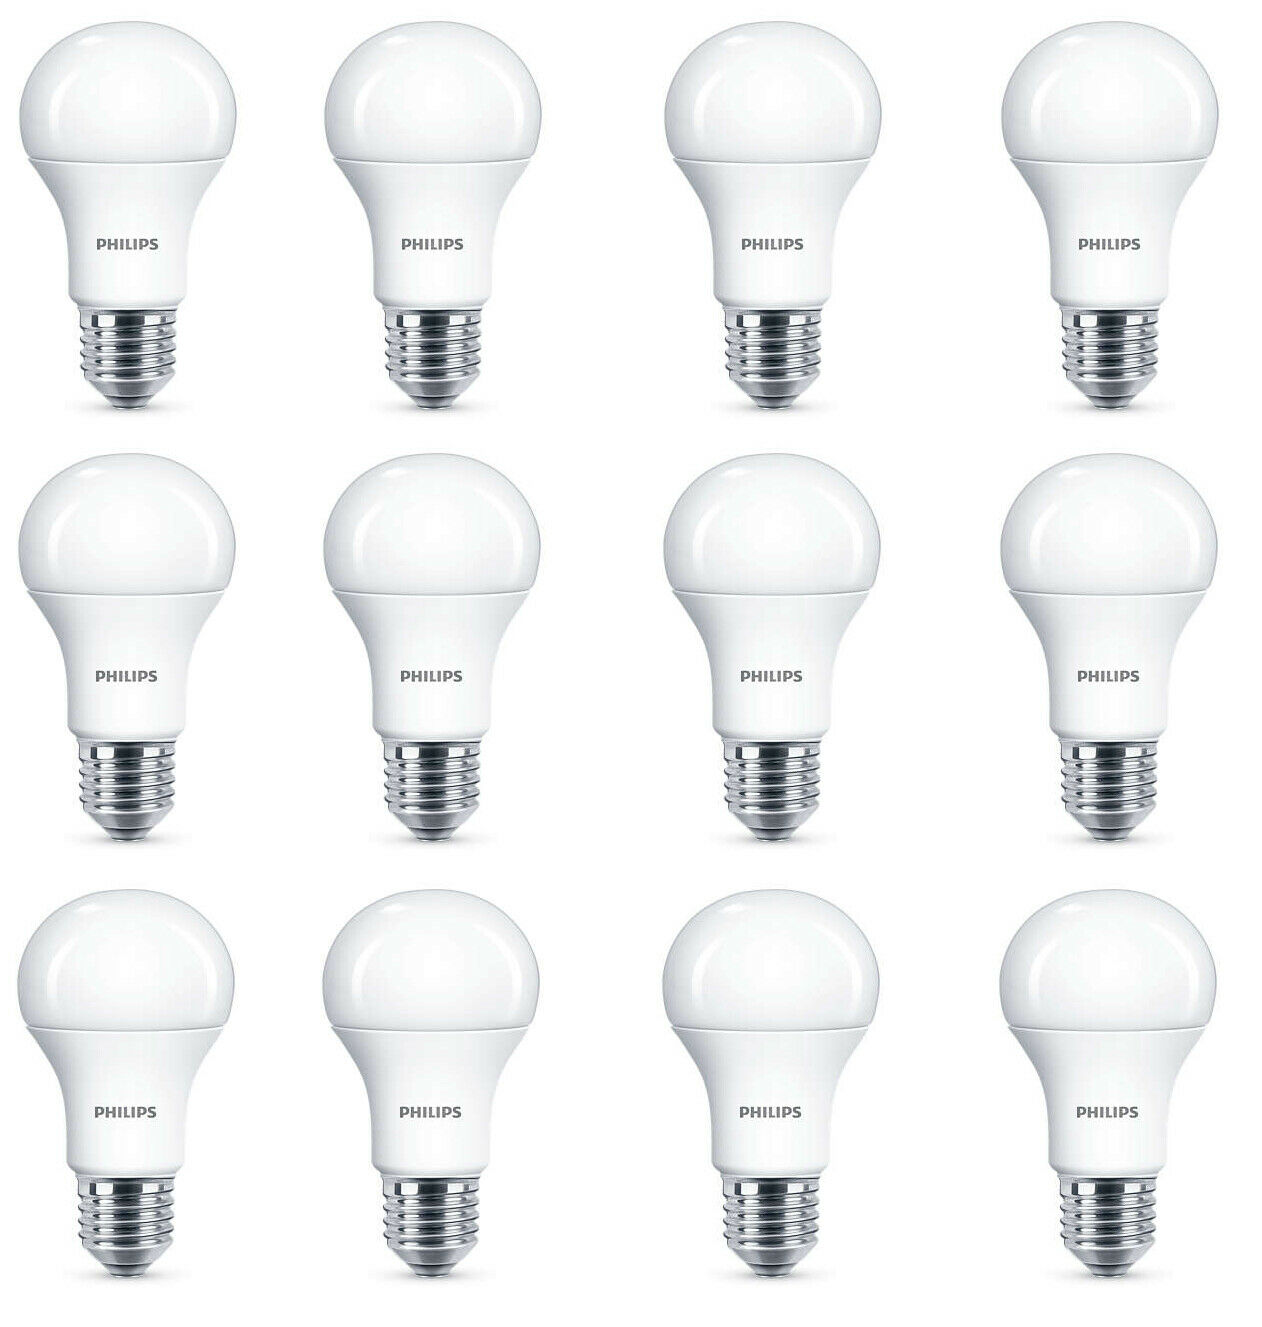 12 x Philips LED Frosted E27 Edison Screw 100w Warm Weiß Light Bulb Lamp 1521lm